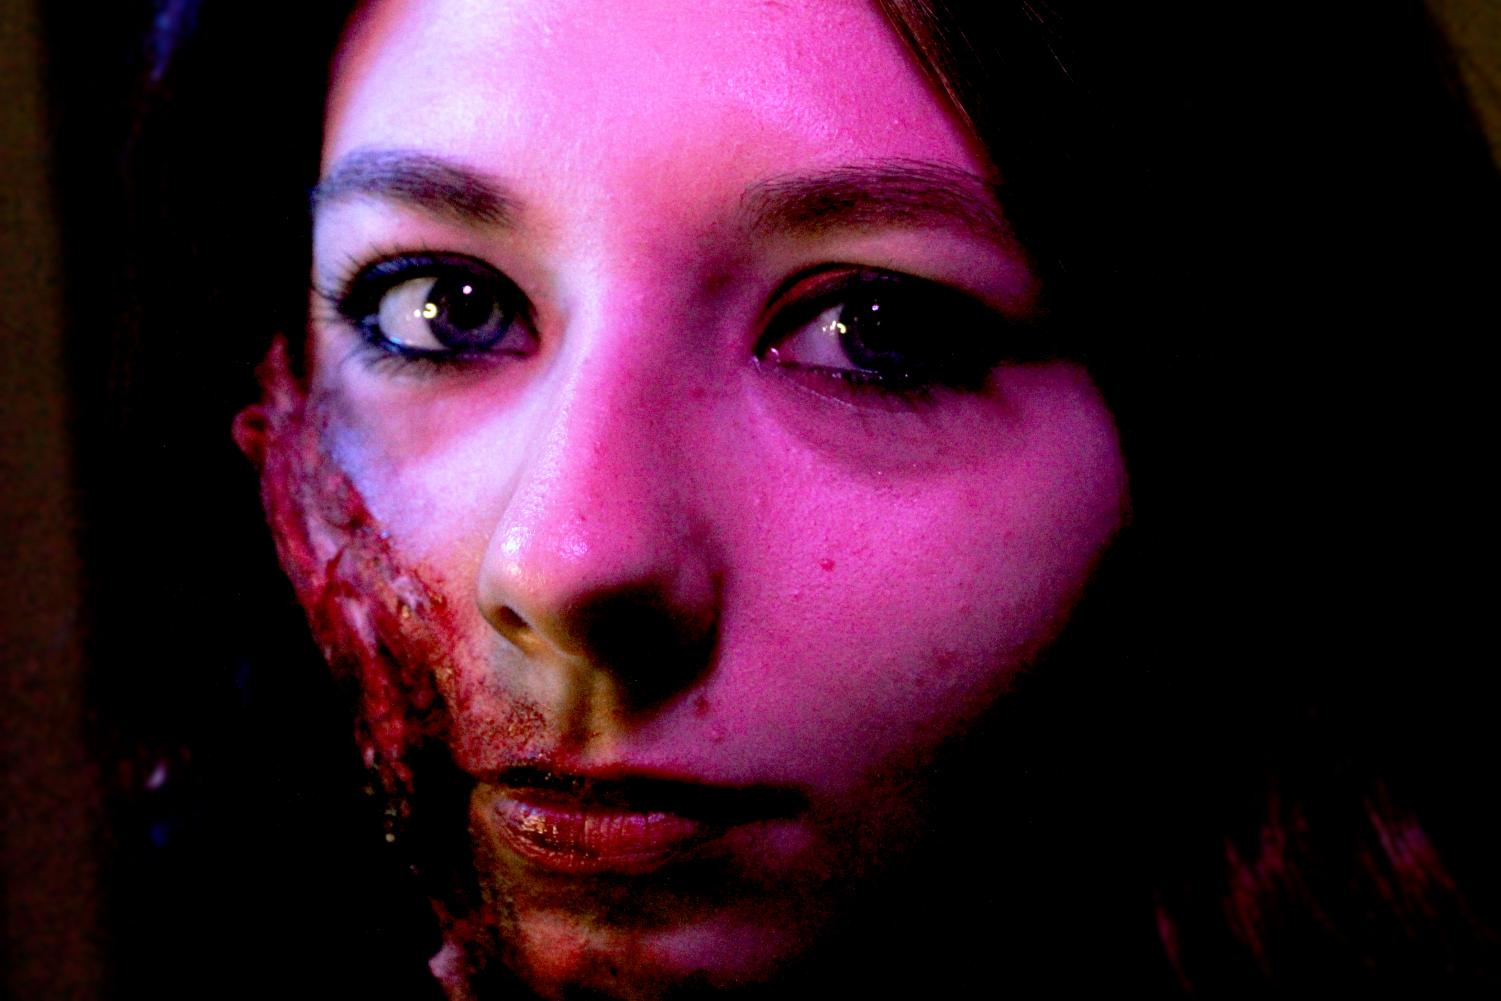 Piper Spengel has expressed her passion for special effects makeup since sixth grade. She tries to stop herself each year by upping the gore and the concept behind it.